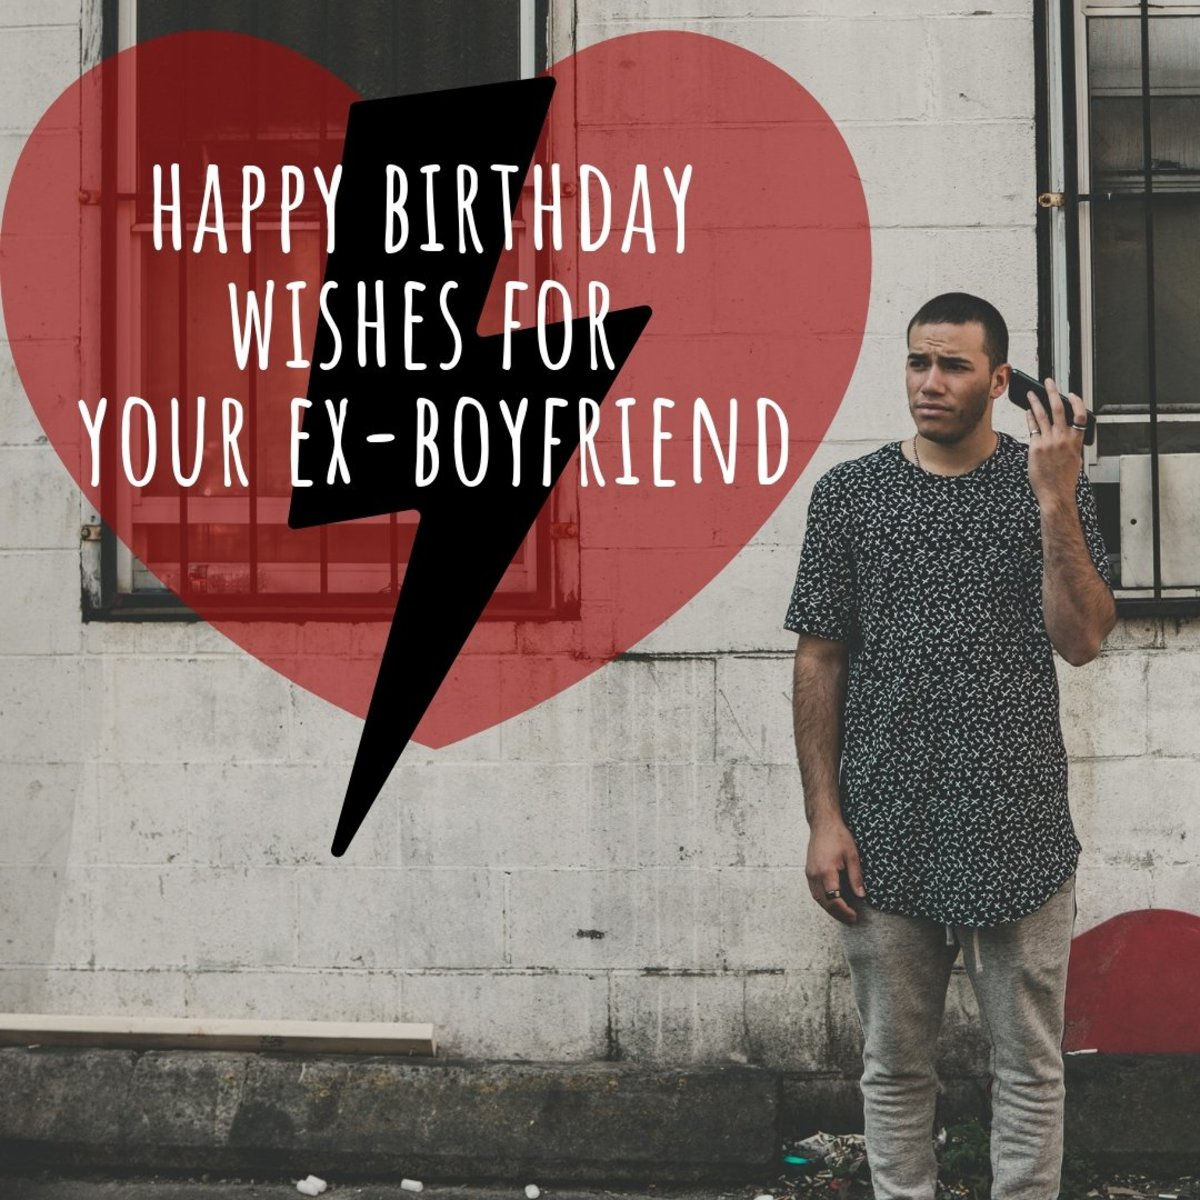 Happy Birthday Wishes For Your Ex-Boyfriend: Ideas For